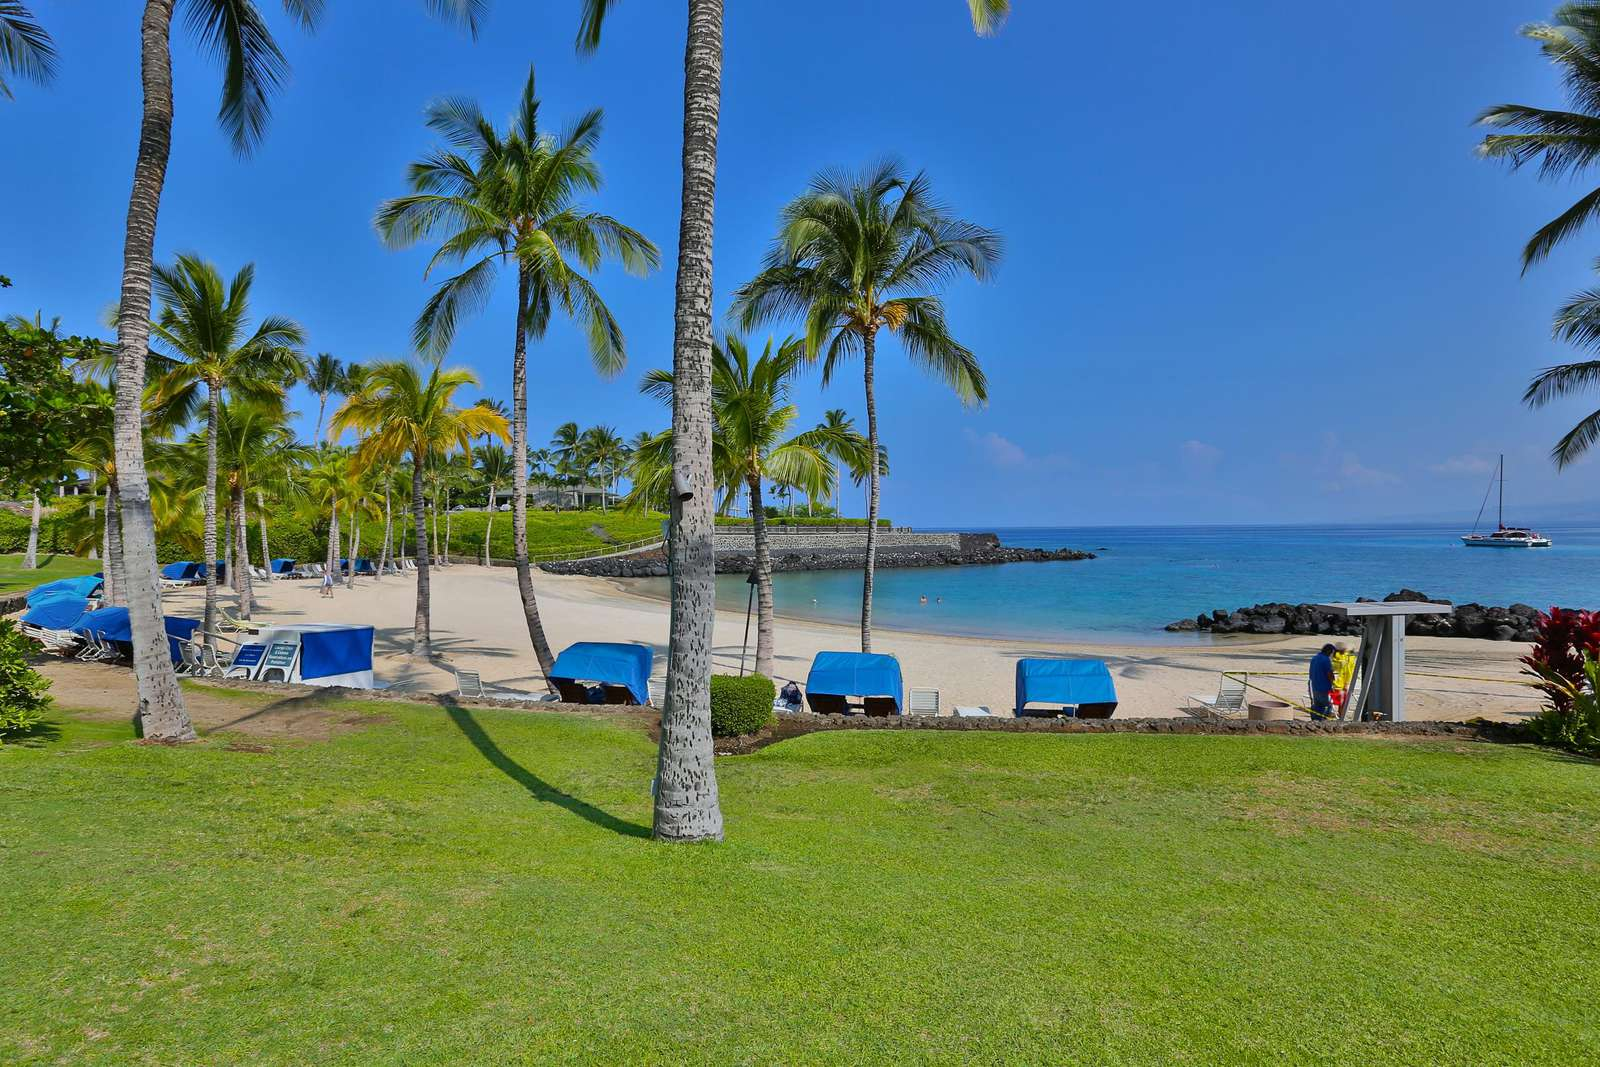 Mauna Lani Beach club access included - key card required for entry